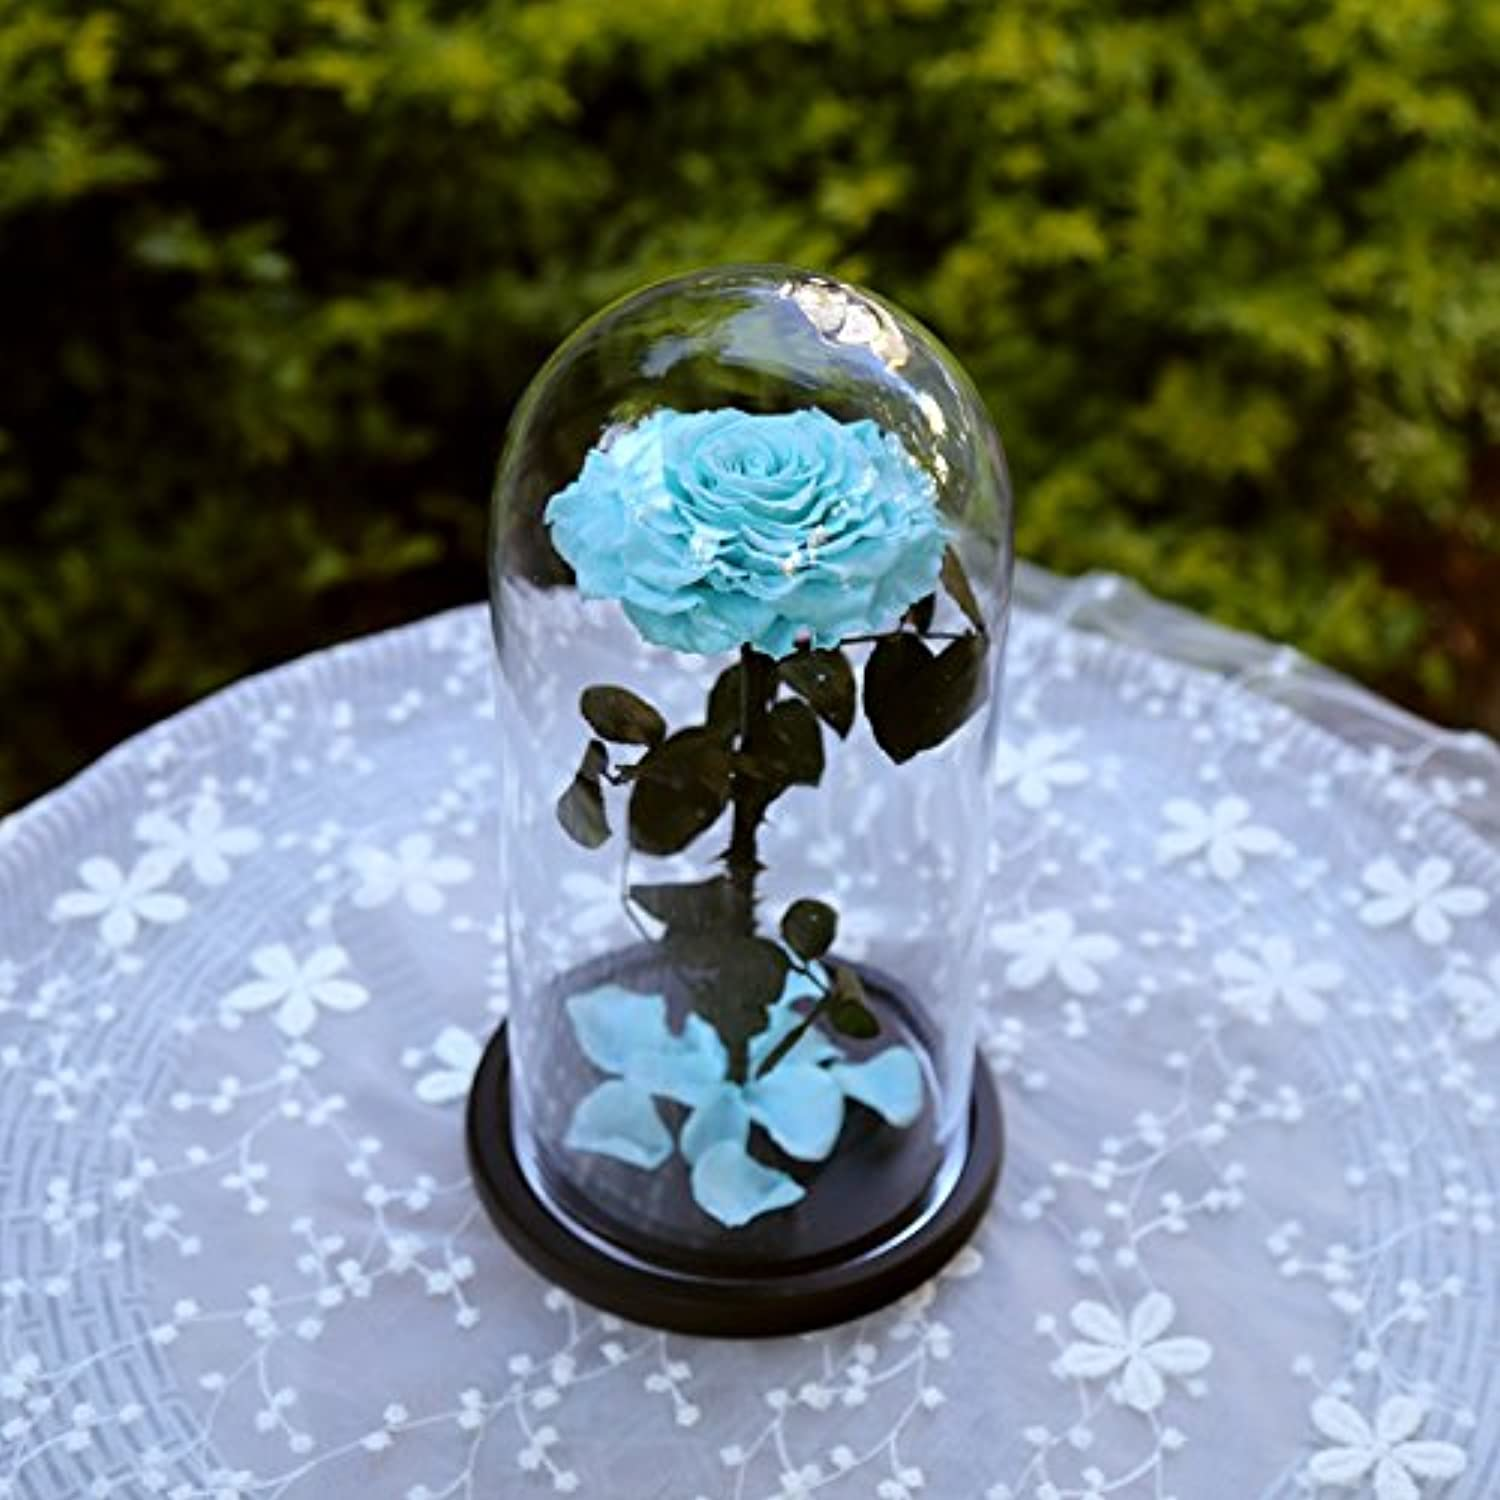 DeFancy Preserved Real pink with Fallen Petals in Glass Cloche Dome with Black Wood Base-Best Gift Jar